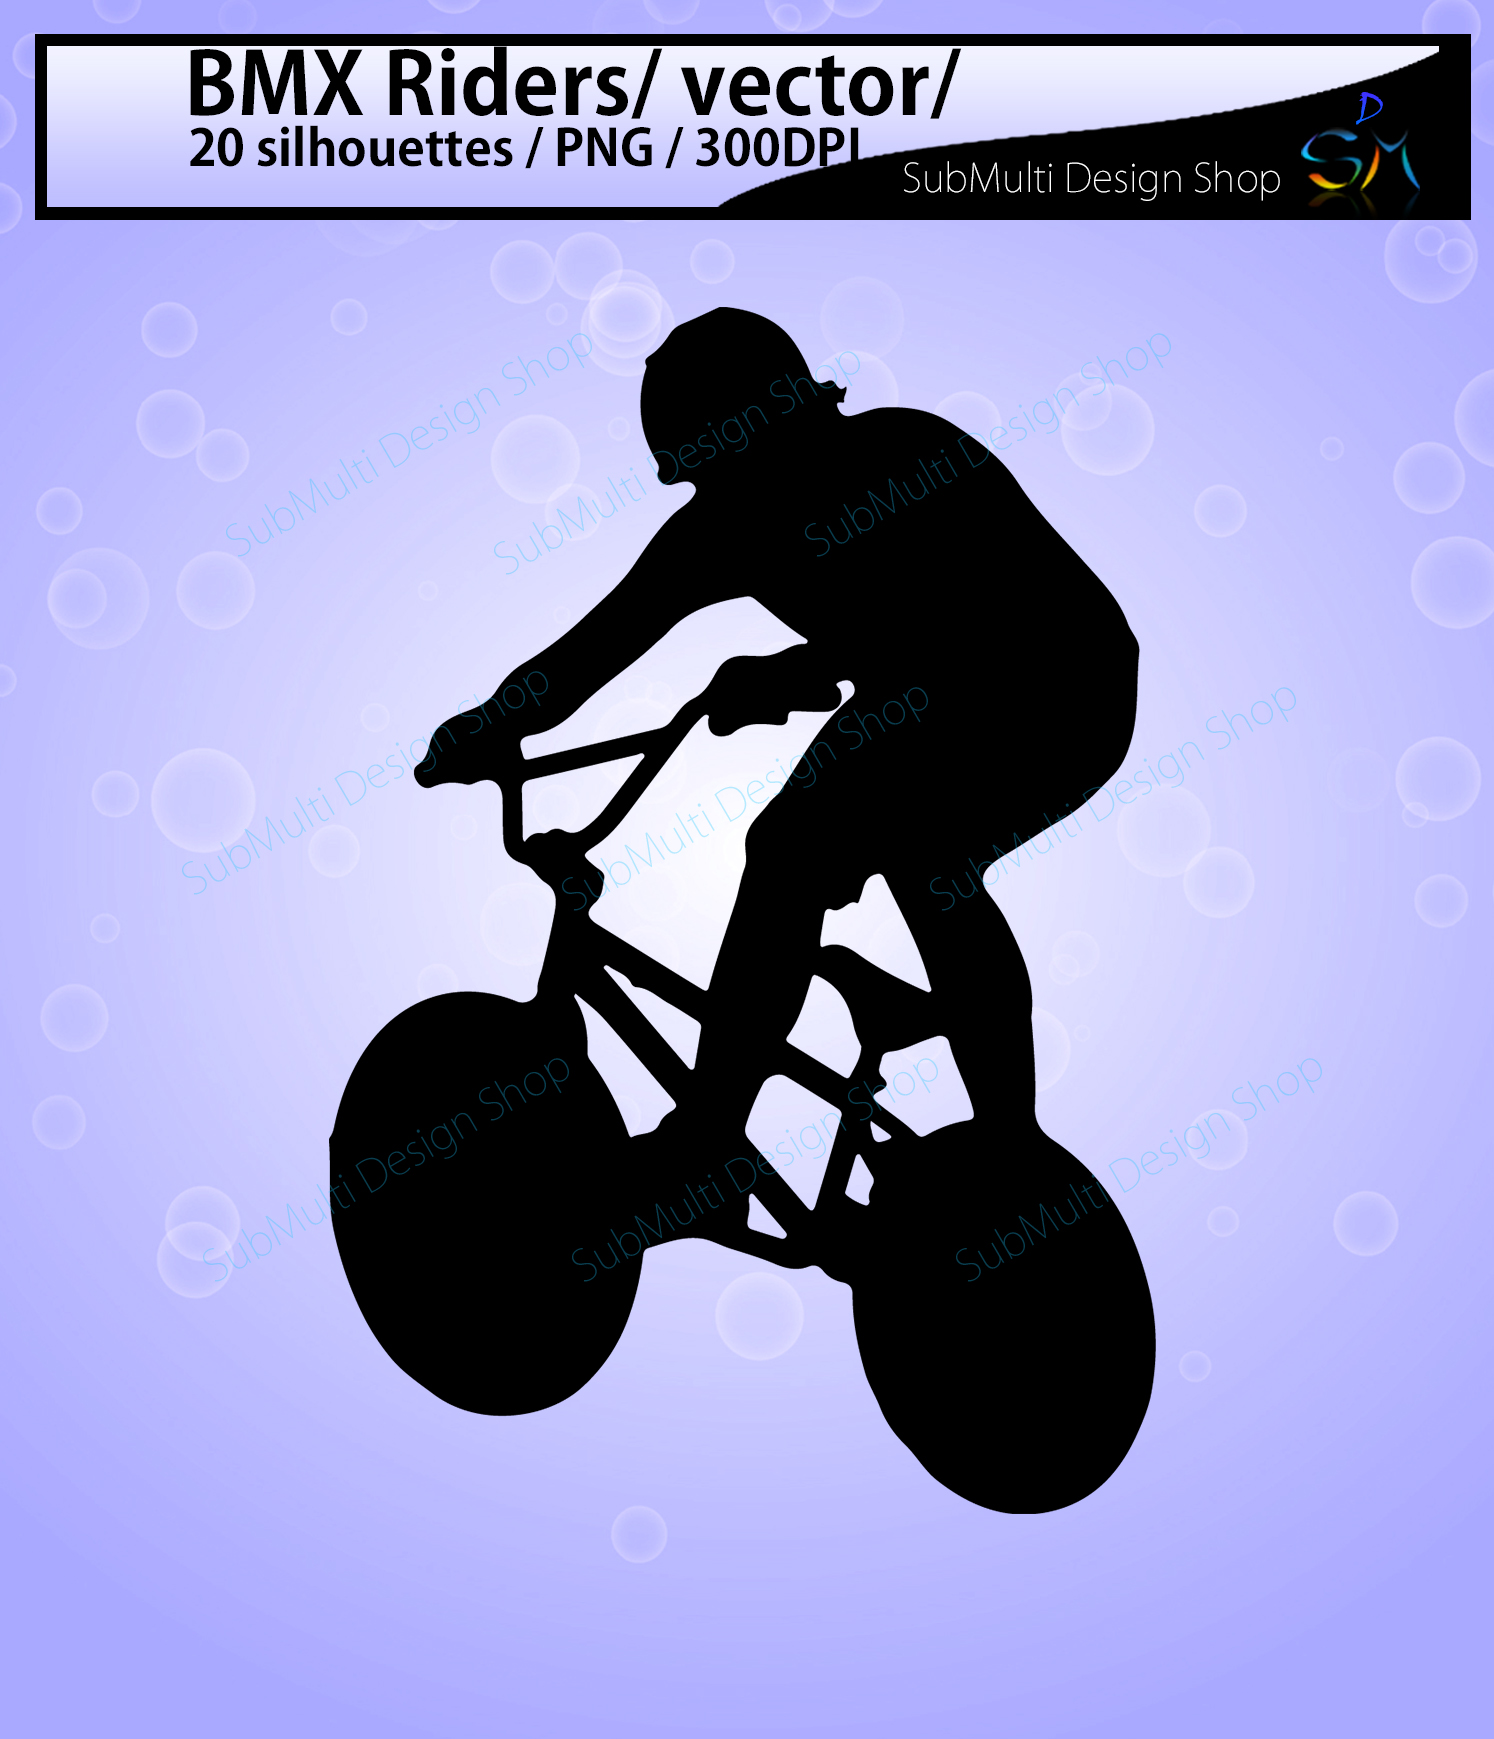 bmx rider silhouette / BMX Rider svg / bmx riders / bmx cycle / bmx rider cliparts / bmx rider vector / bike ride / SVG / EPS / Png / DXf example image 3